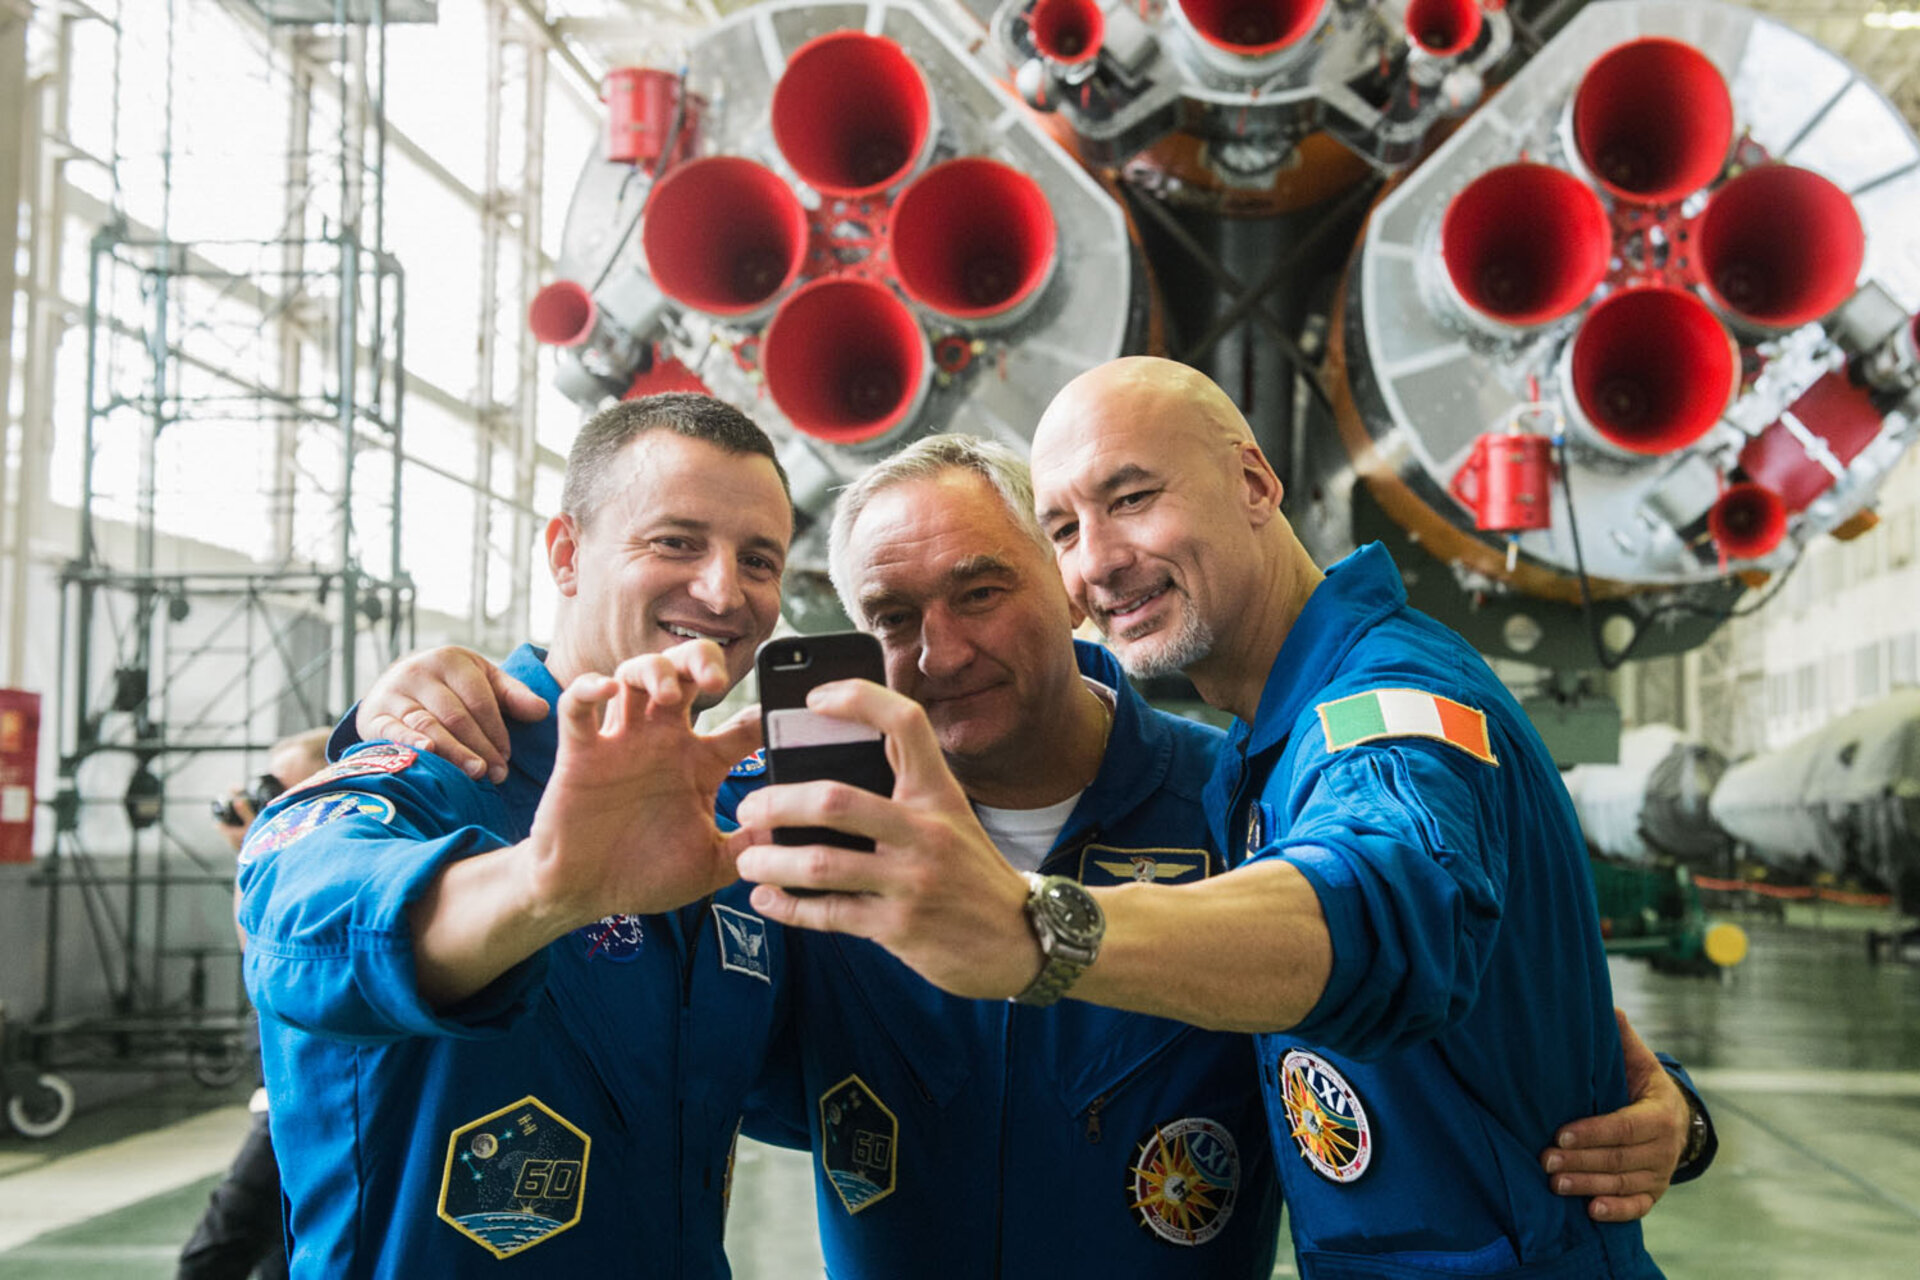 Luca, Drew and Alexander take a selfie with their Soyuz spacecraft